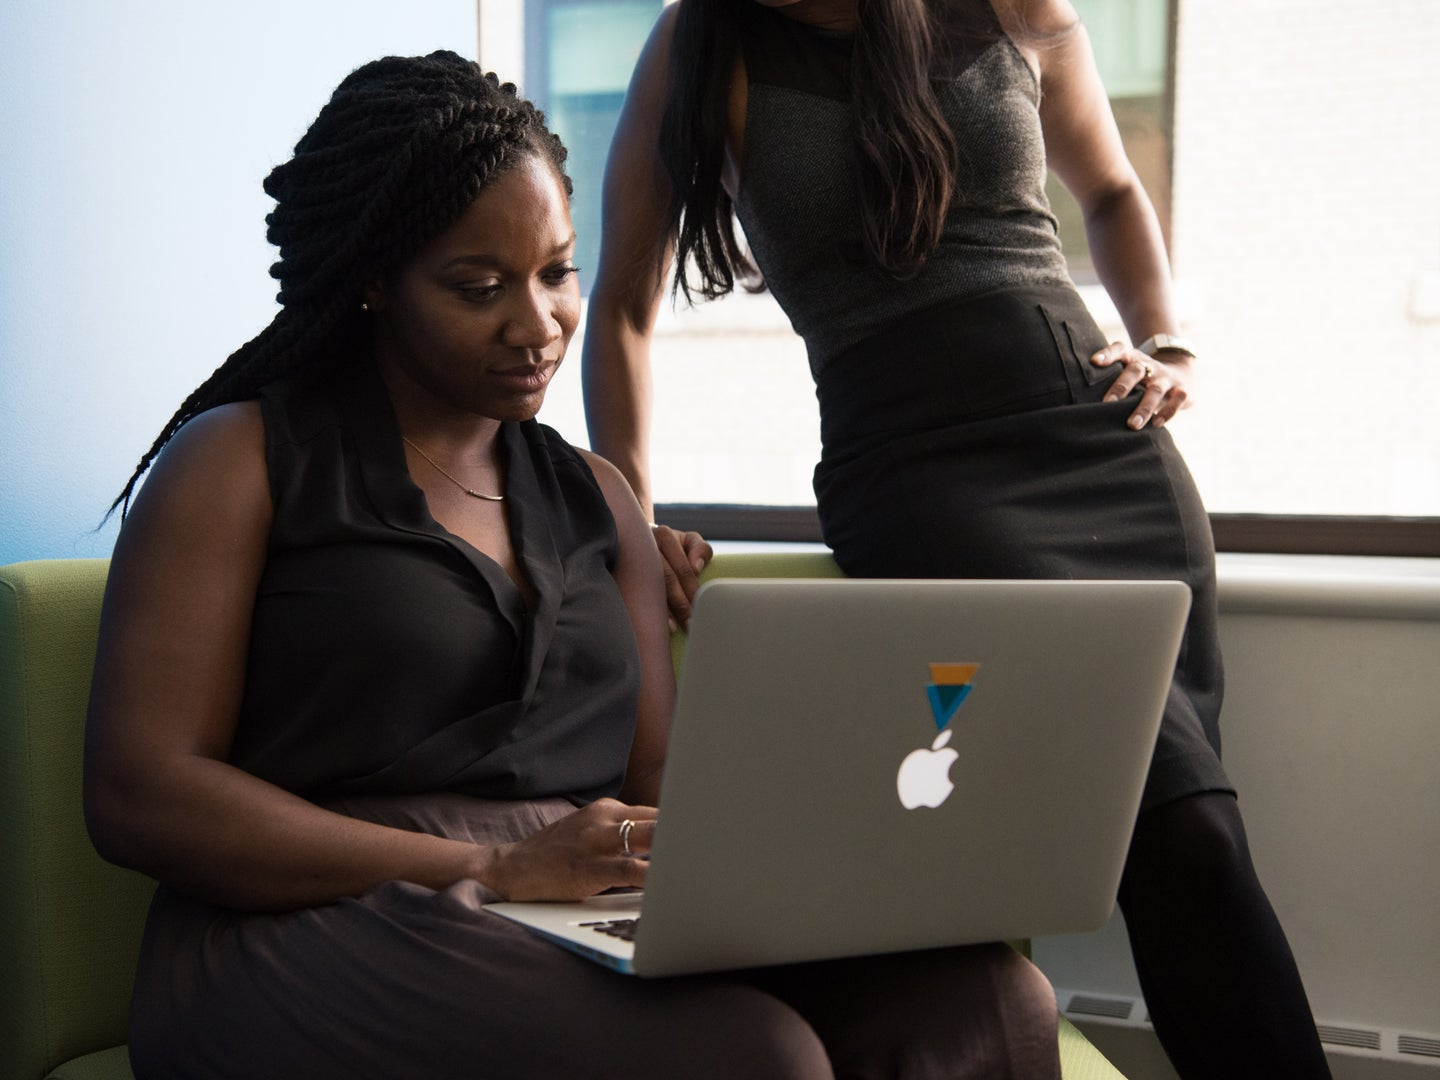 A woman using an Apple Macbook laptop while another woman watches from nearby.